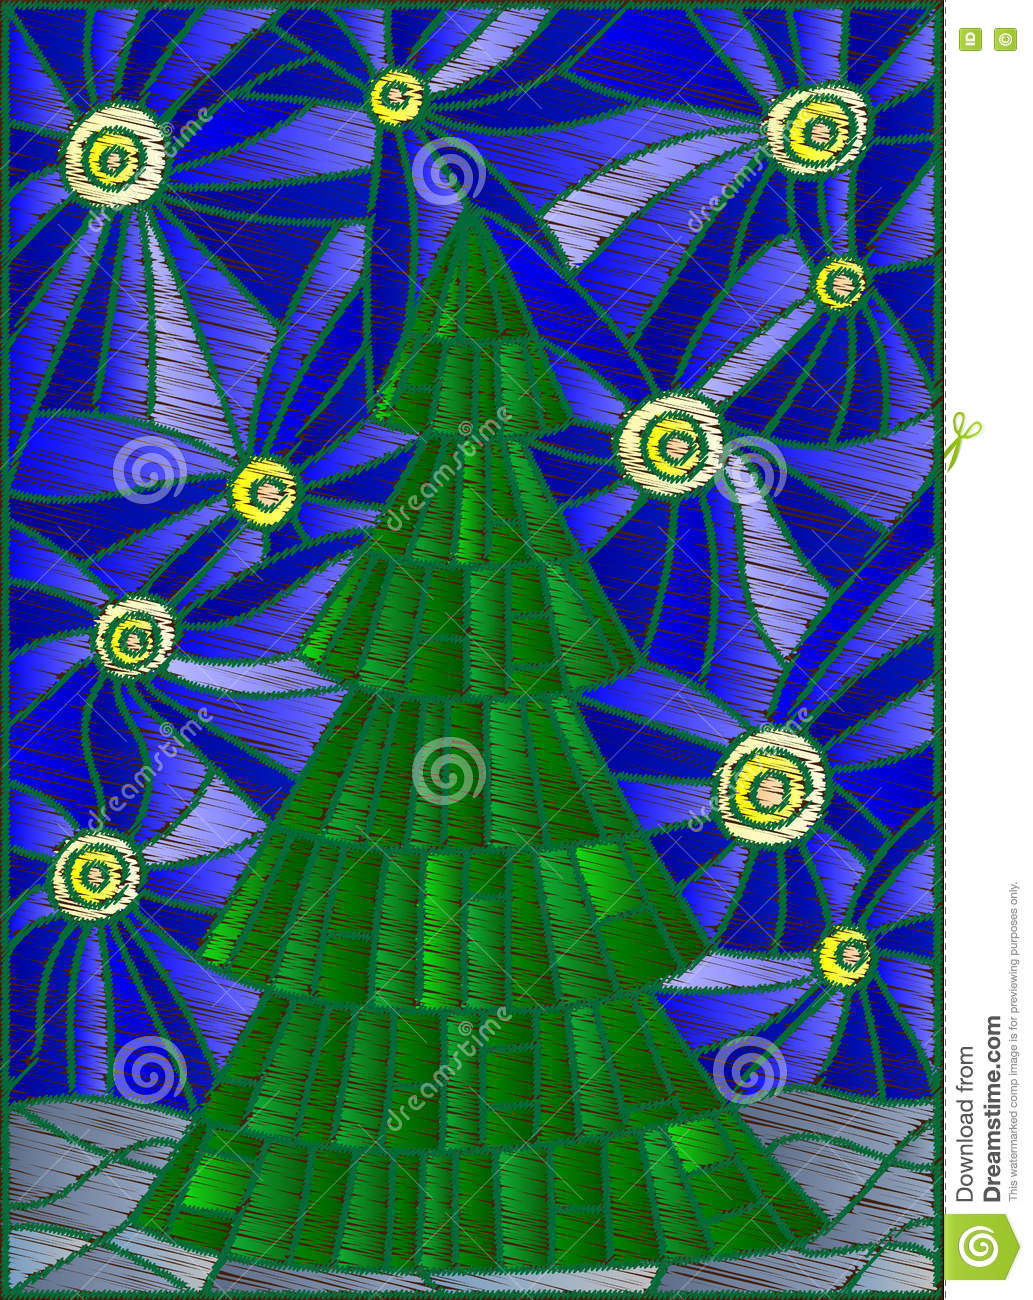 Abstract Illustration With Christmas Tree Against The Starry Sky